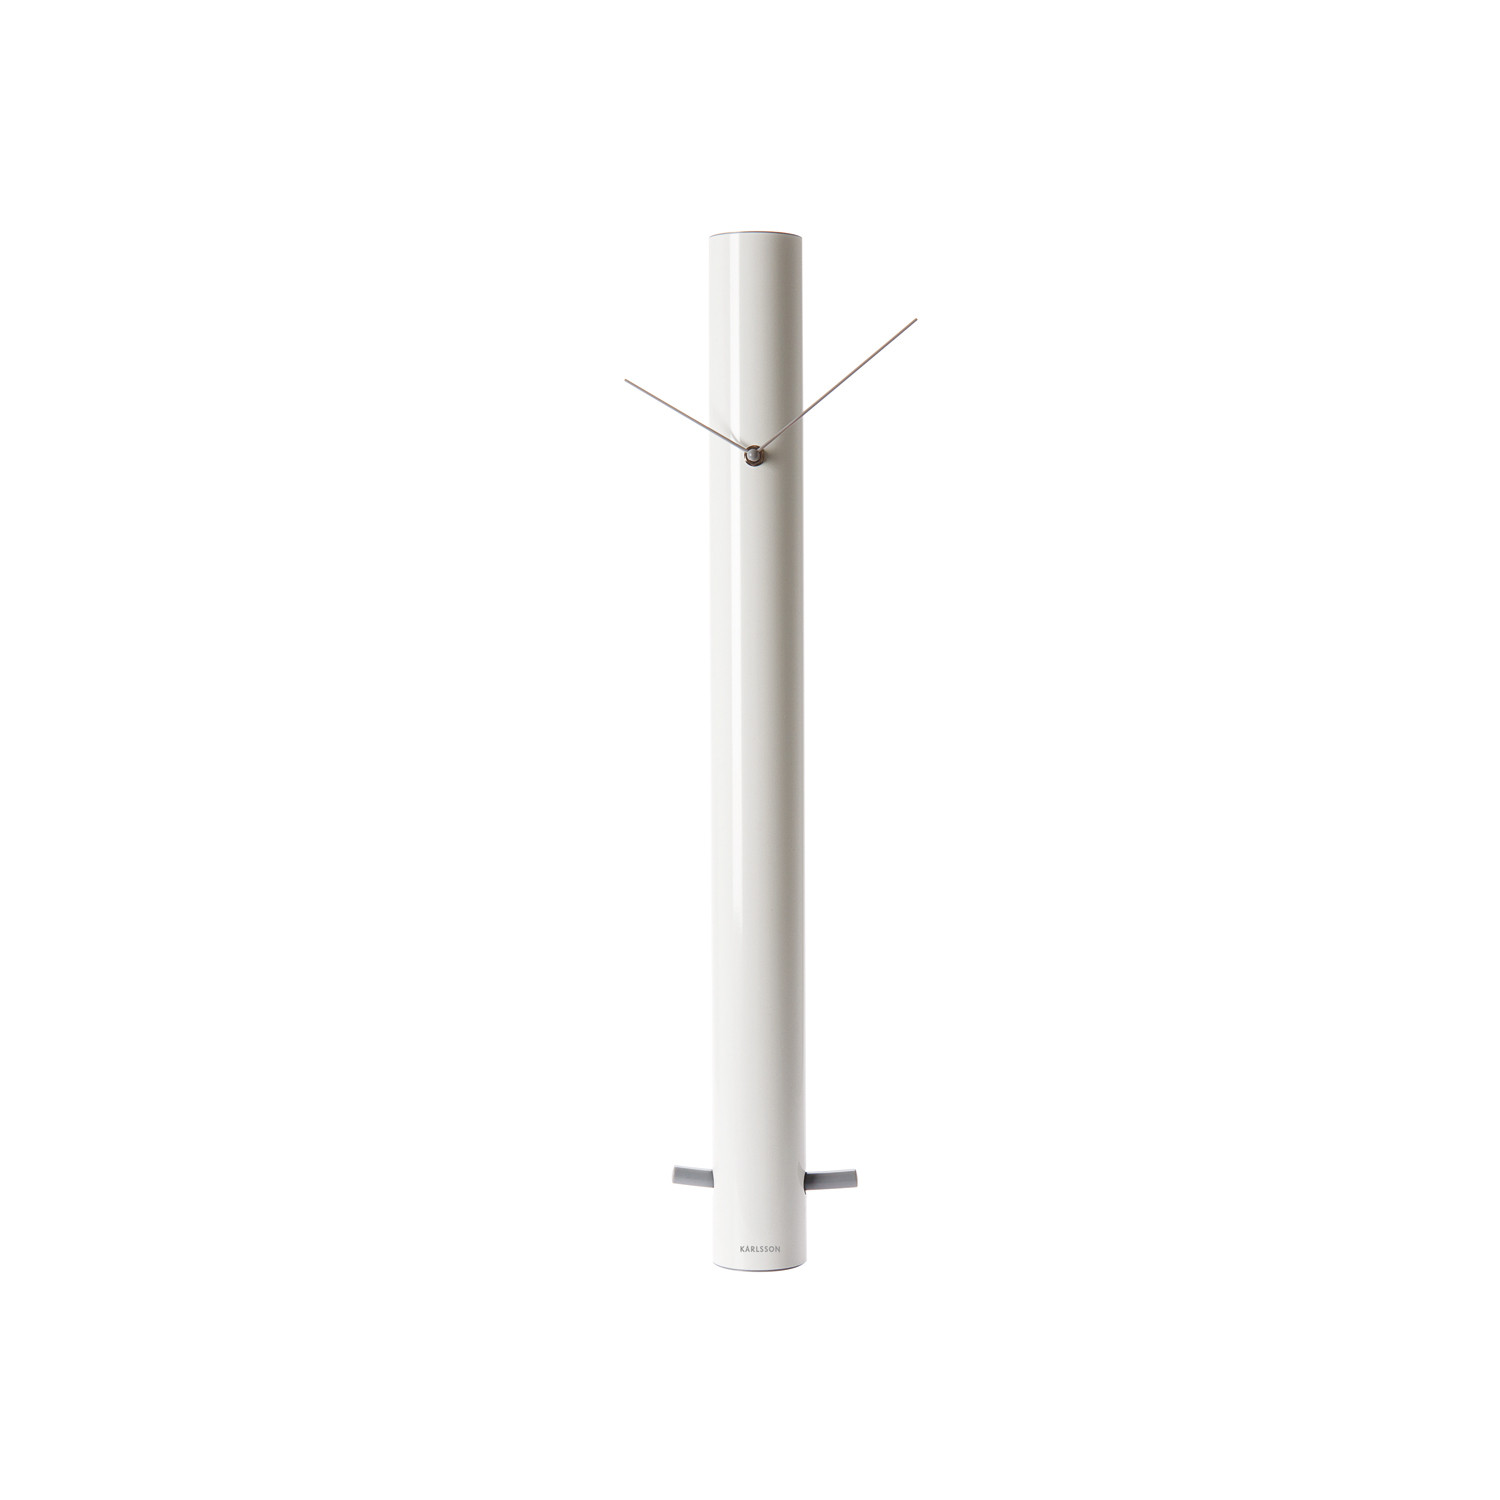 Pendulum tube wall clock white grey karlsson for Touch of modern clock